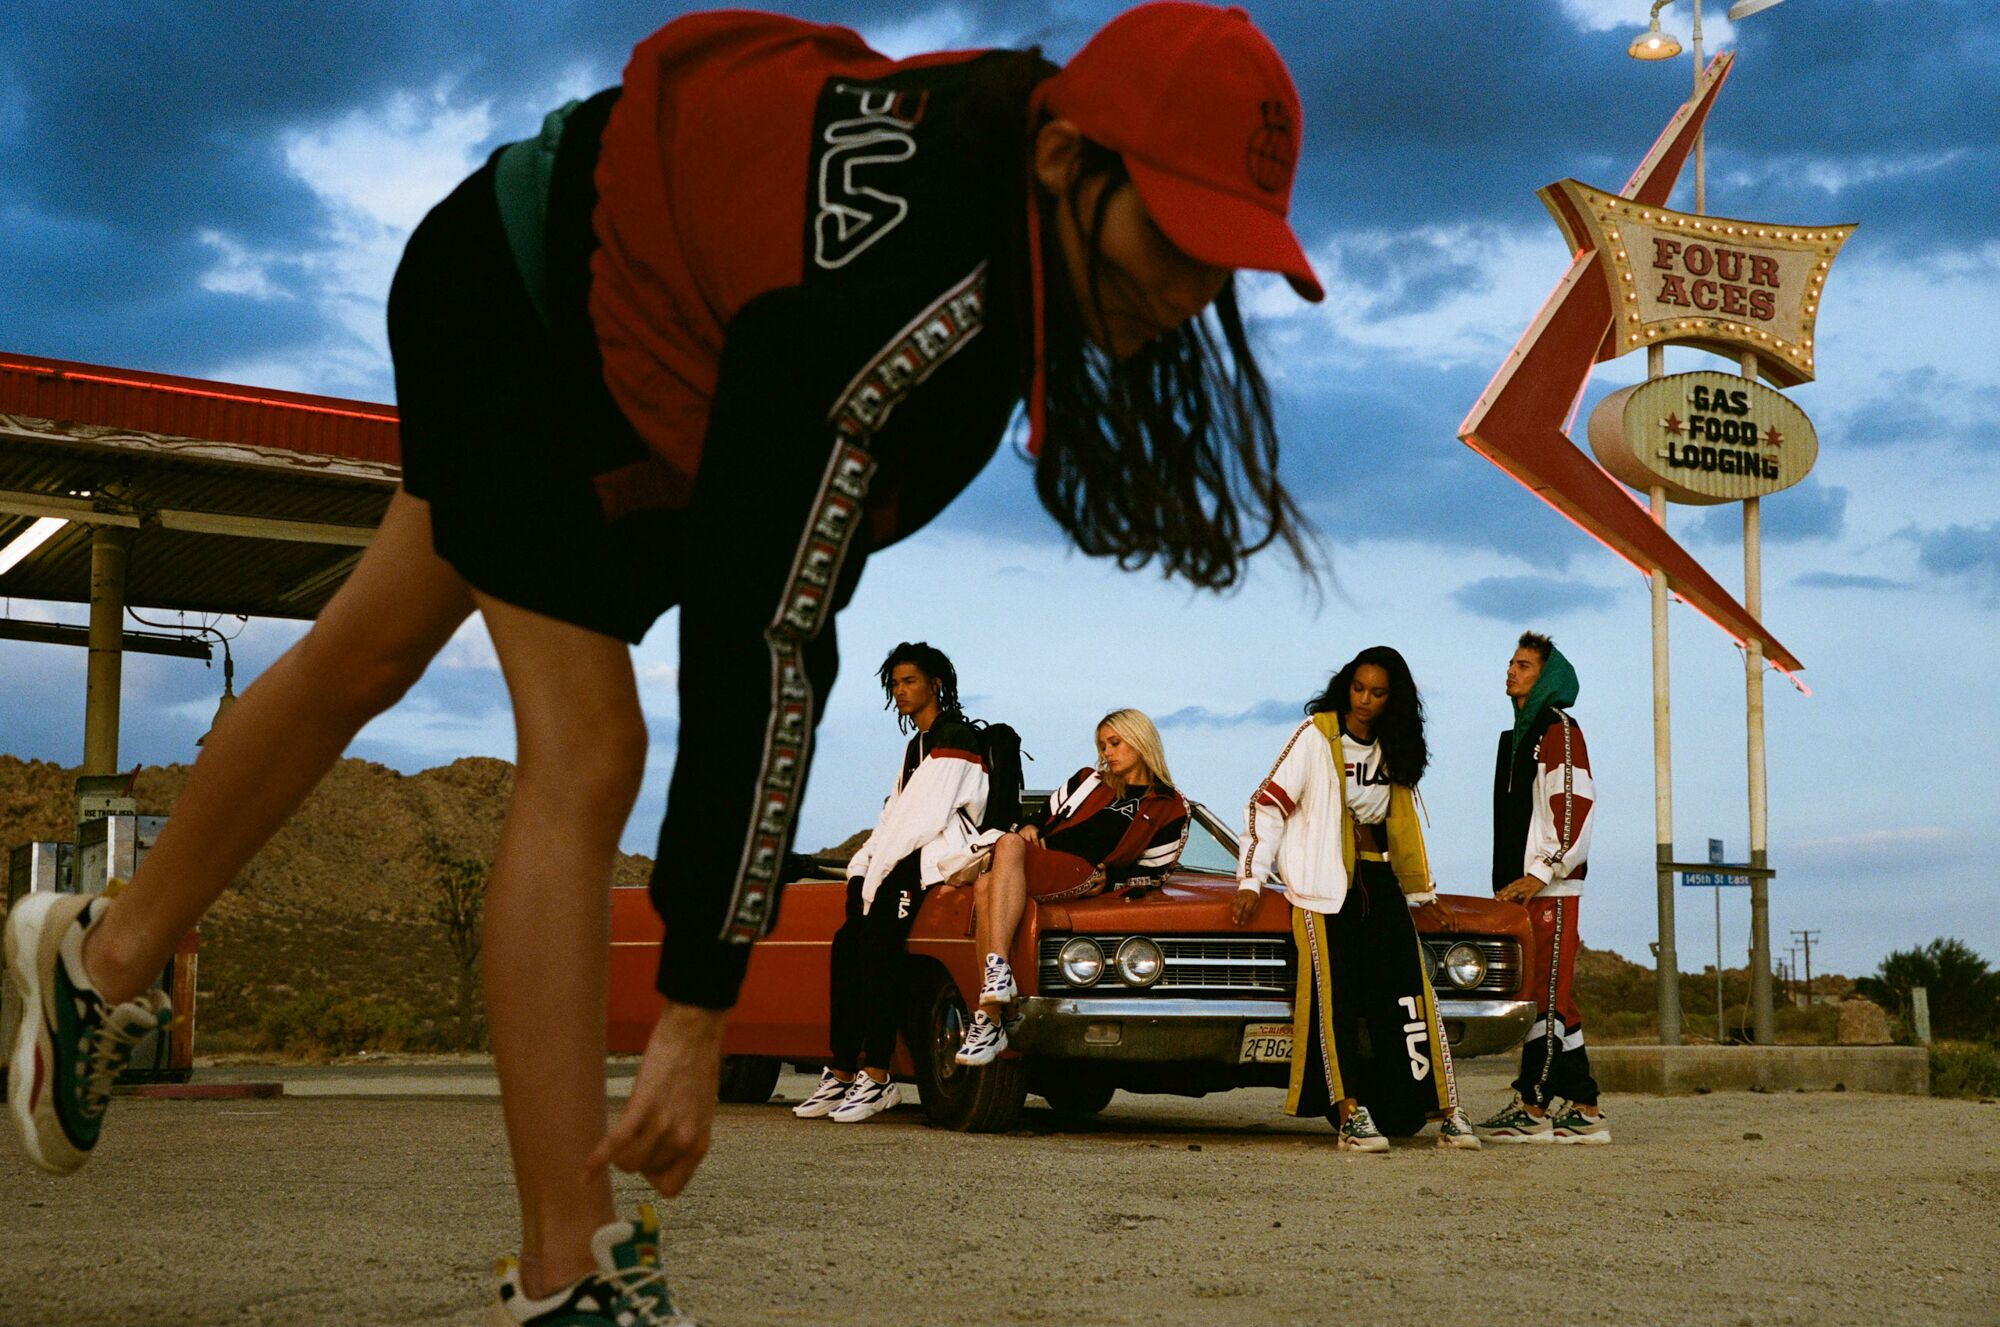 FILA FUSION by DRIELY S.